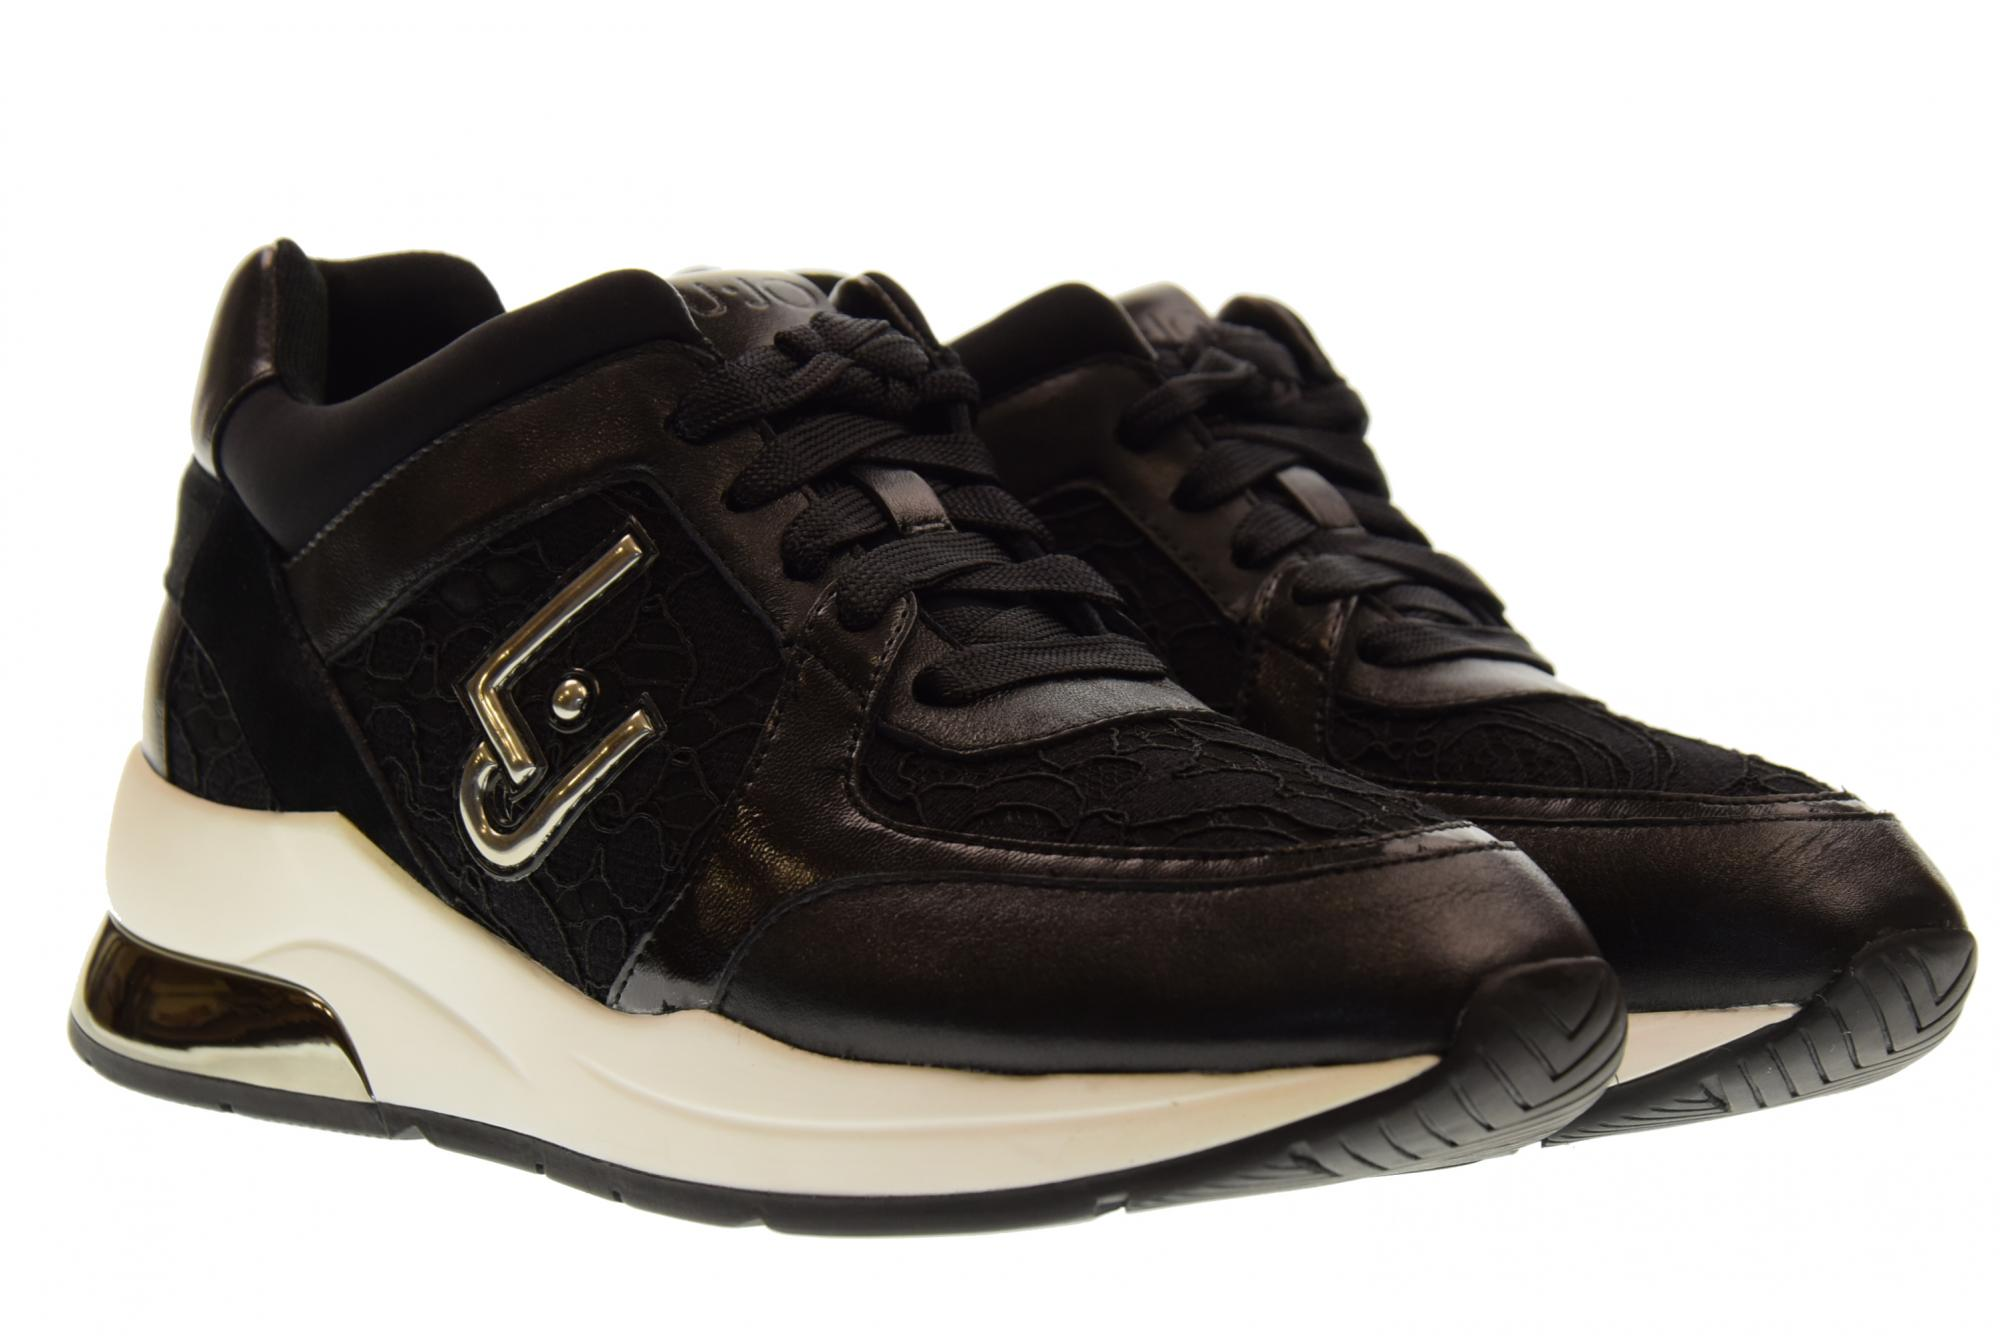 7dcecf6ff5 Details about Liu Jo A18u shoes woman low sneakers B68003 TX002 KARLIE 05  LACE UP BLACK